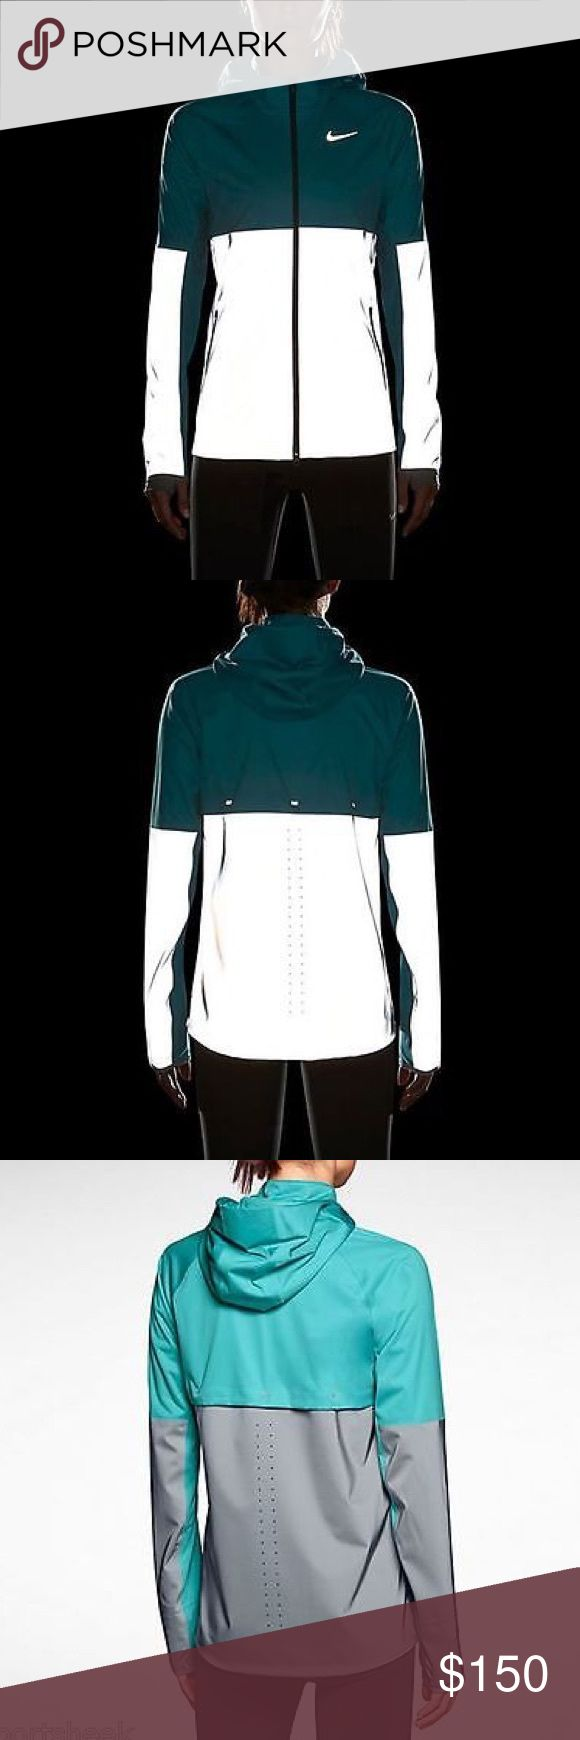 Nike Shield Flash Reflective Running Jacket Brand new without tags. Jacket is teal and reflective. Water resistant and blocks wind. More photos coming soon, but feel free to purchase if ready! Nike Jackets & Coats